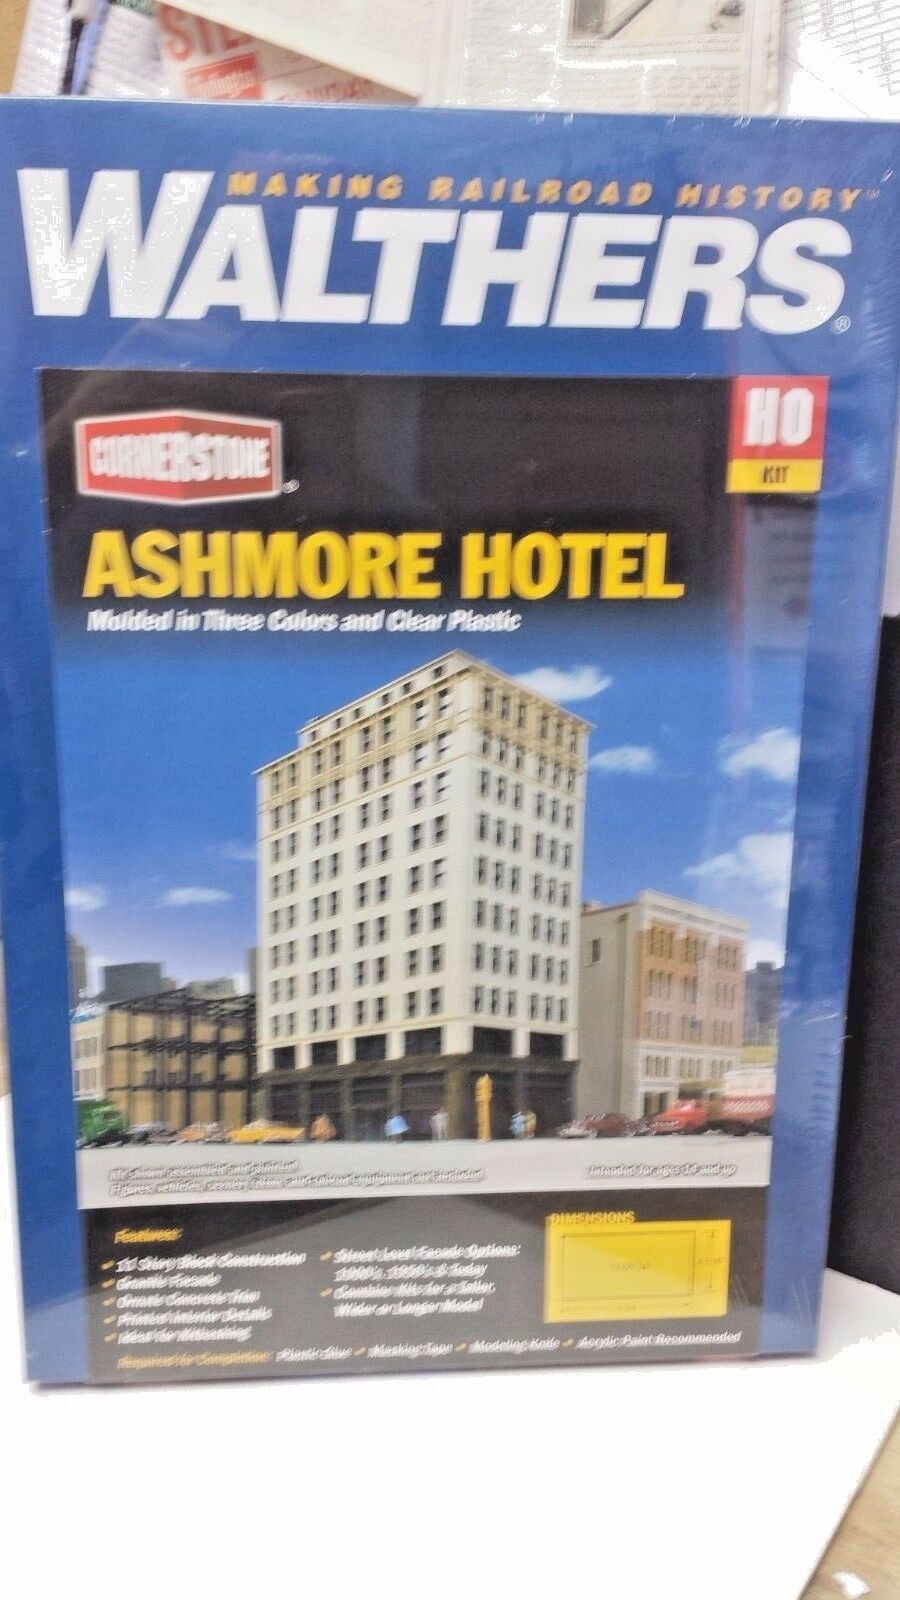 Ashmore Hotel Tower  Walthers Model Railroad building kit 933-3764